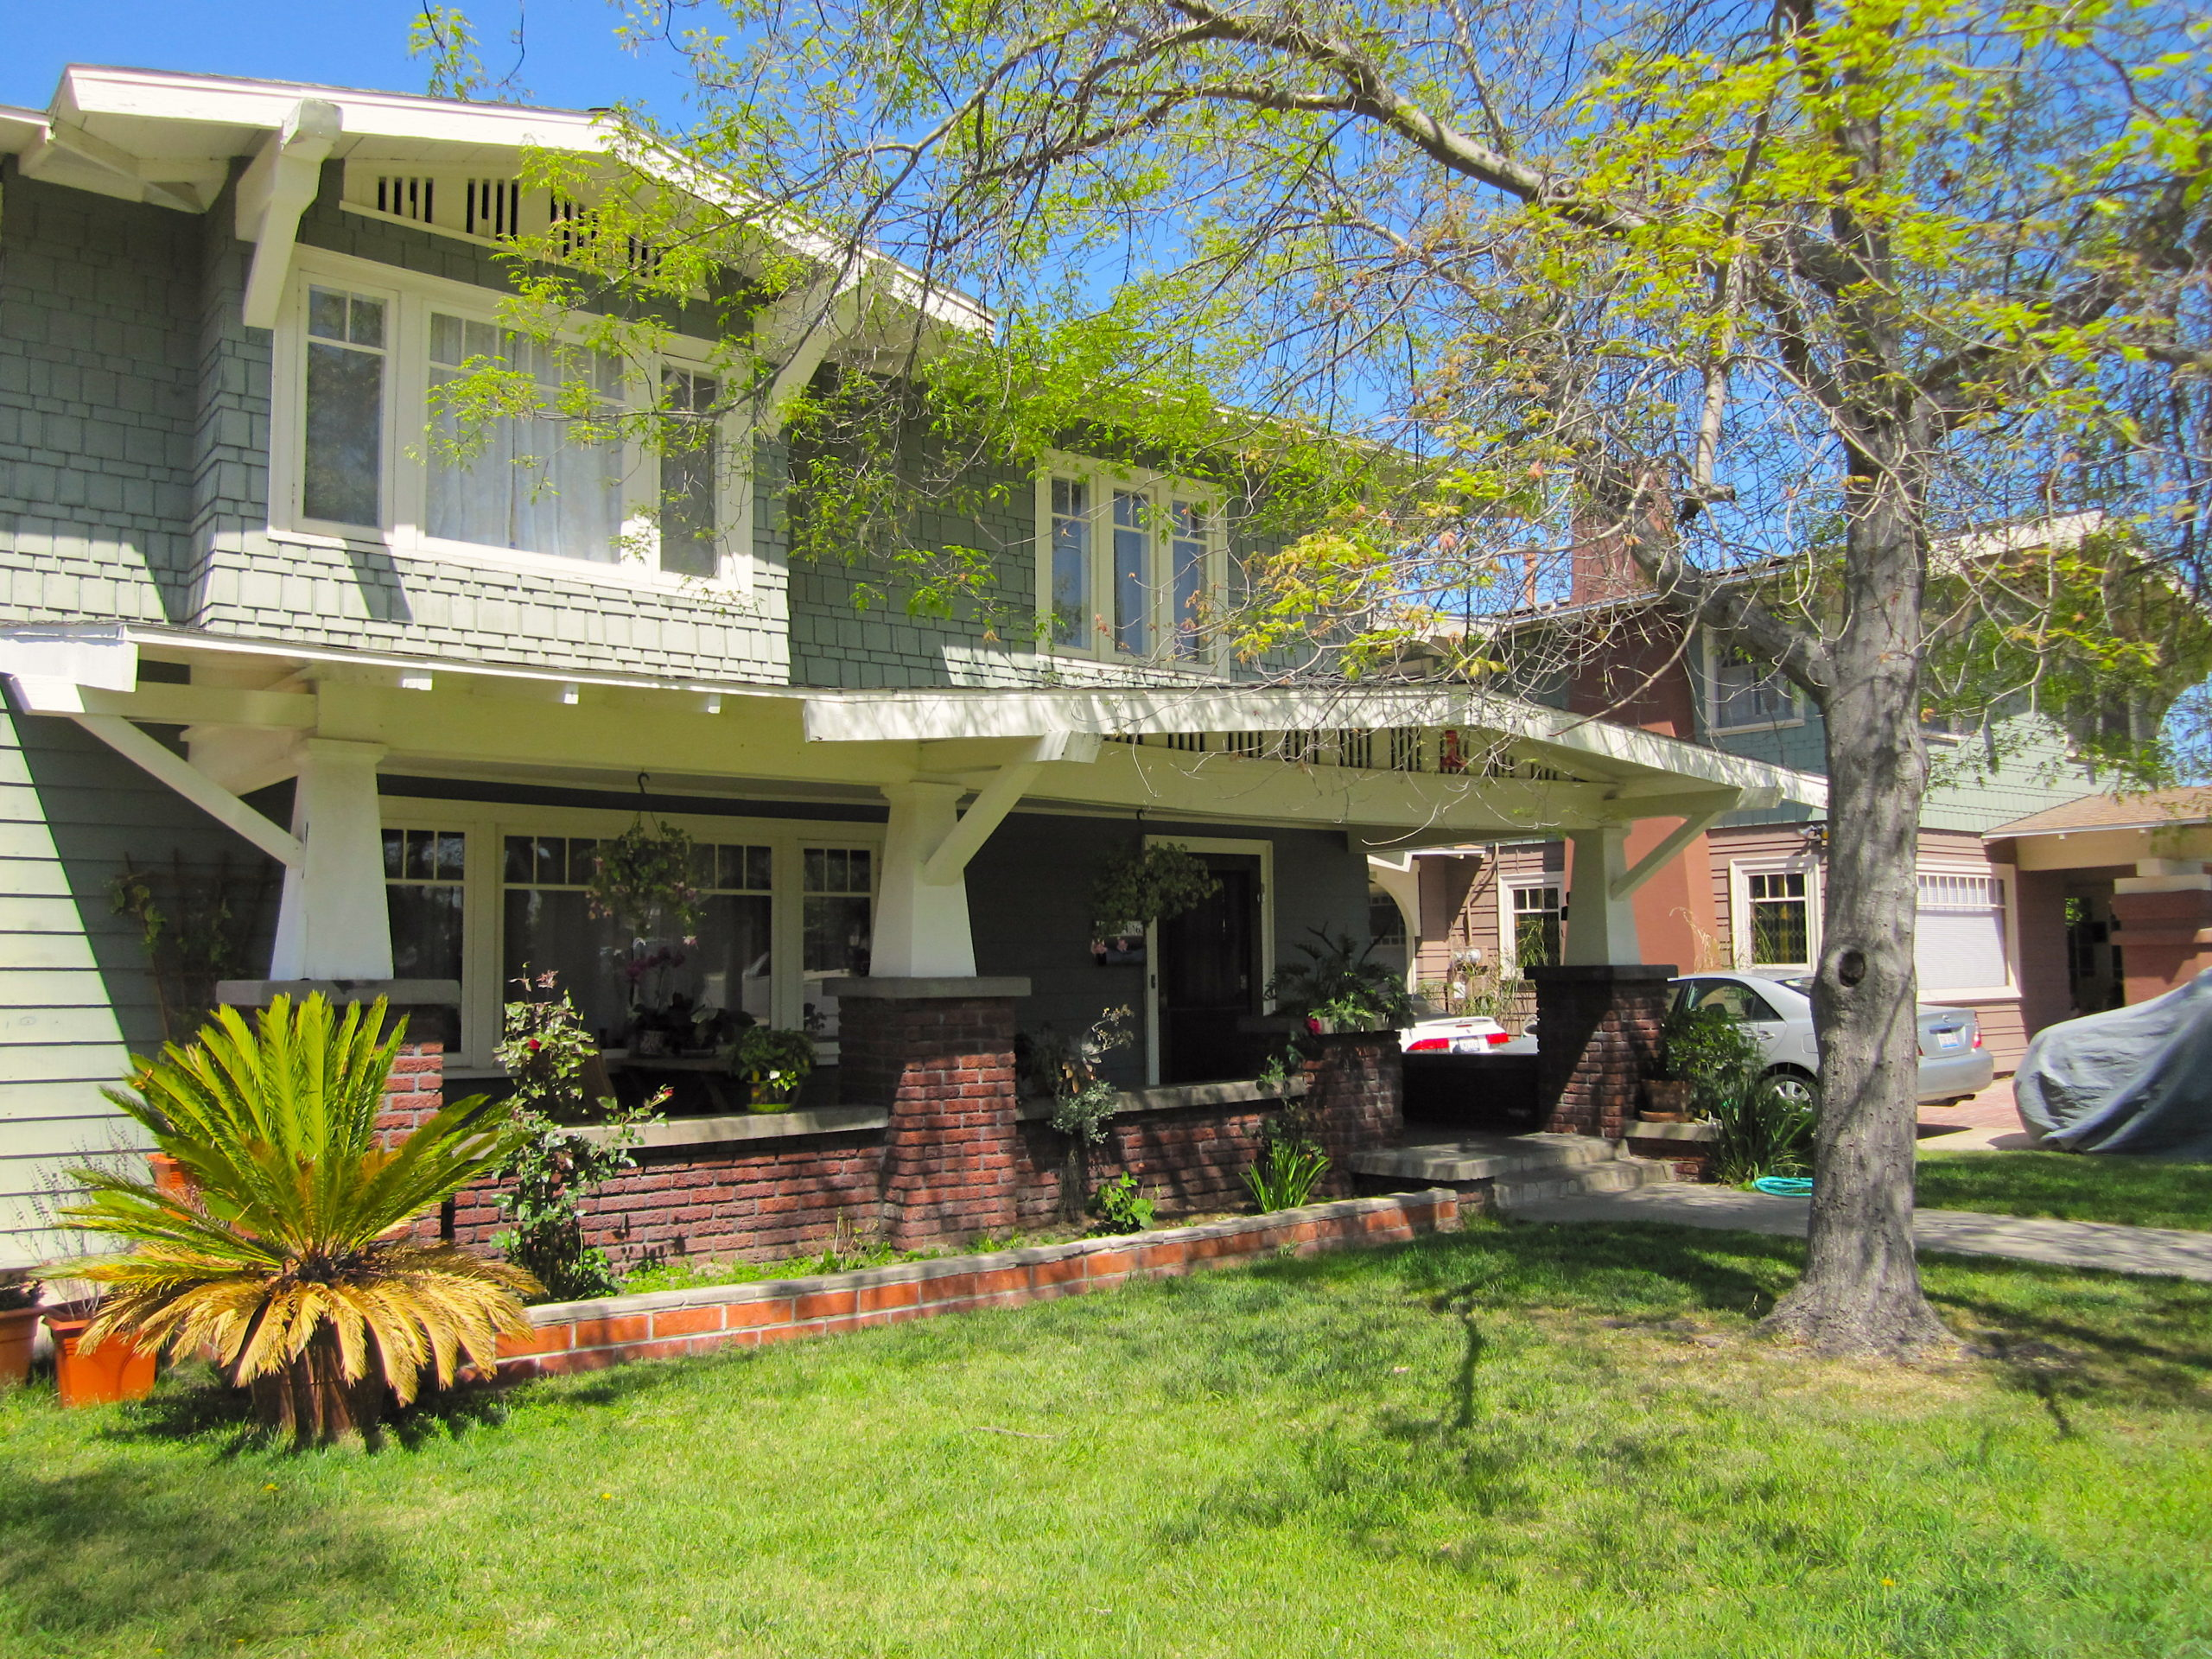 Craftsman style home in Dryden Historic District